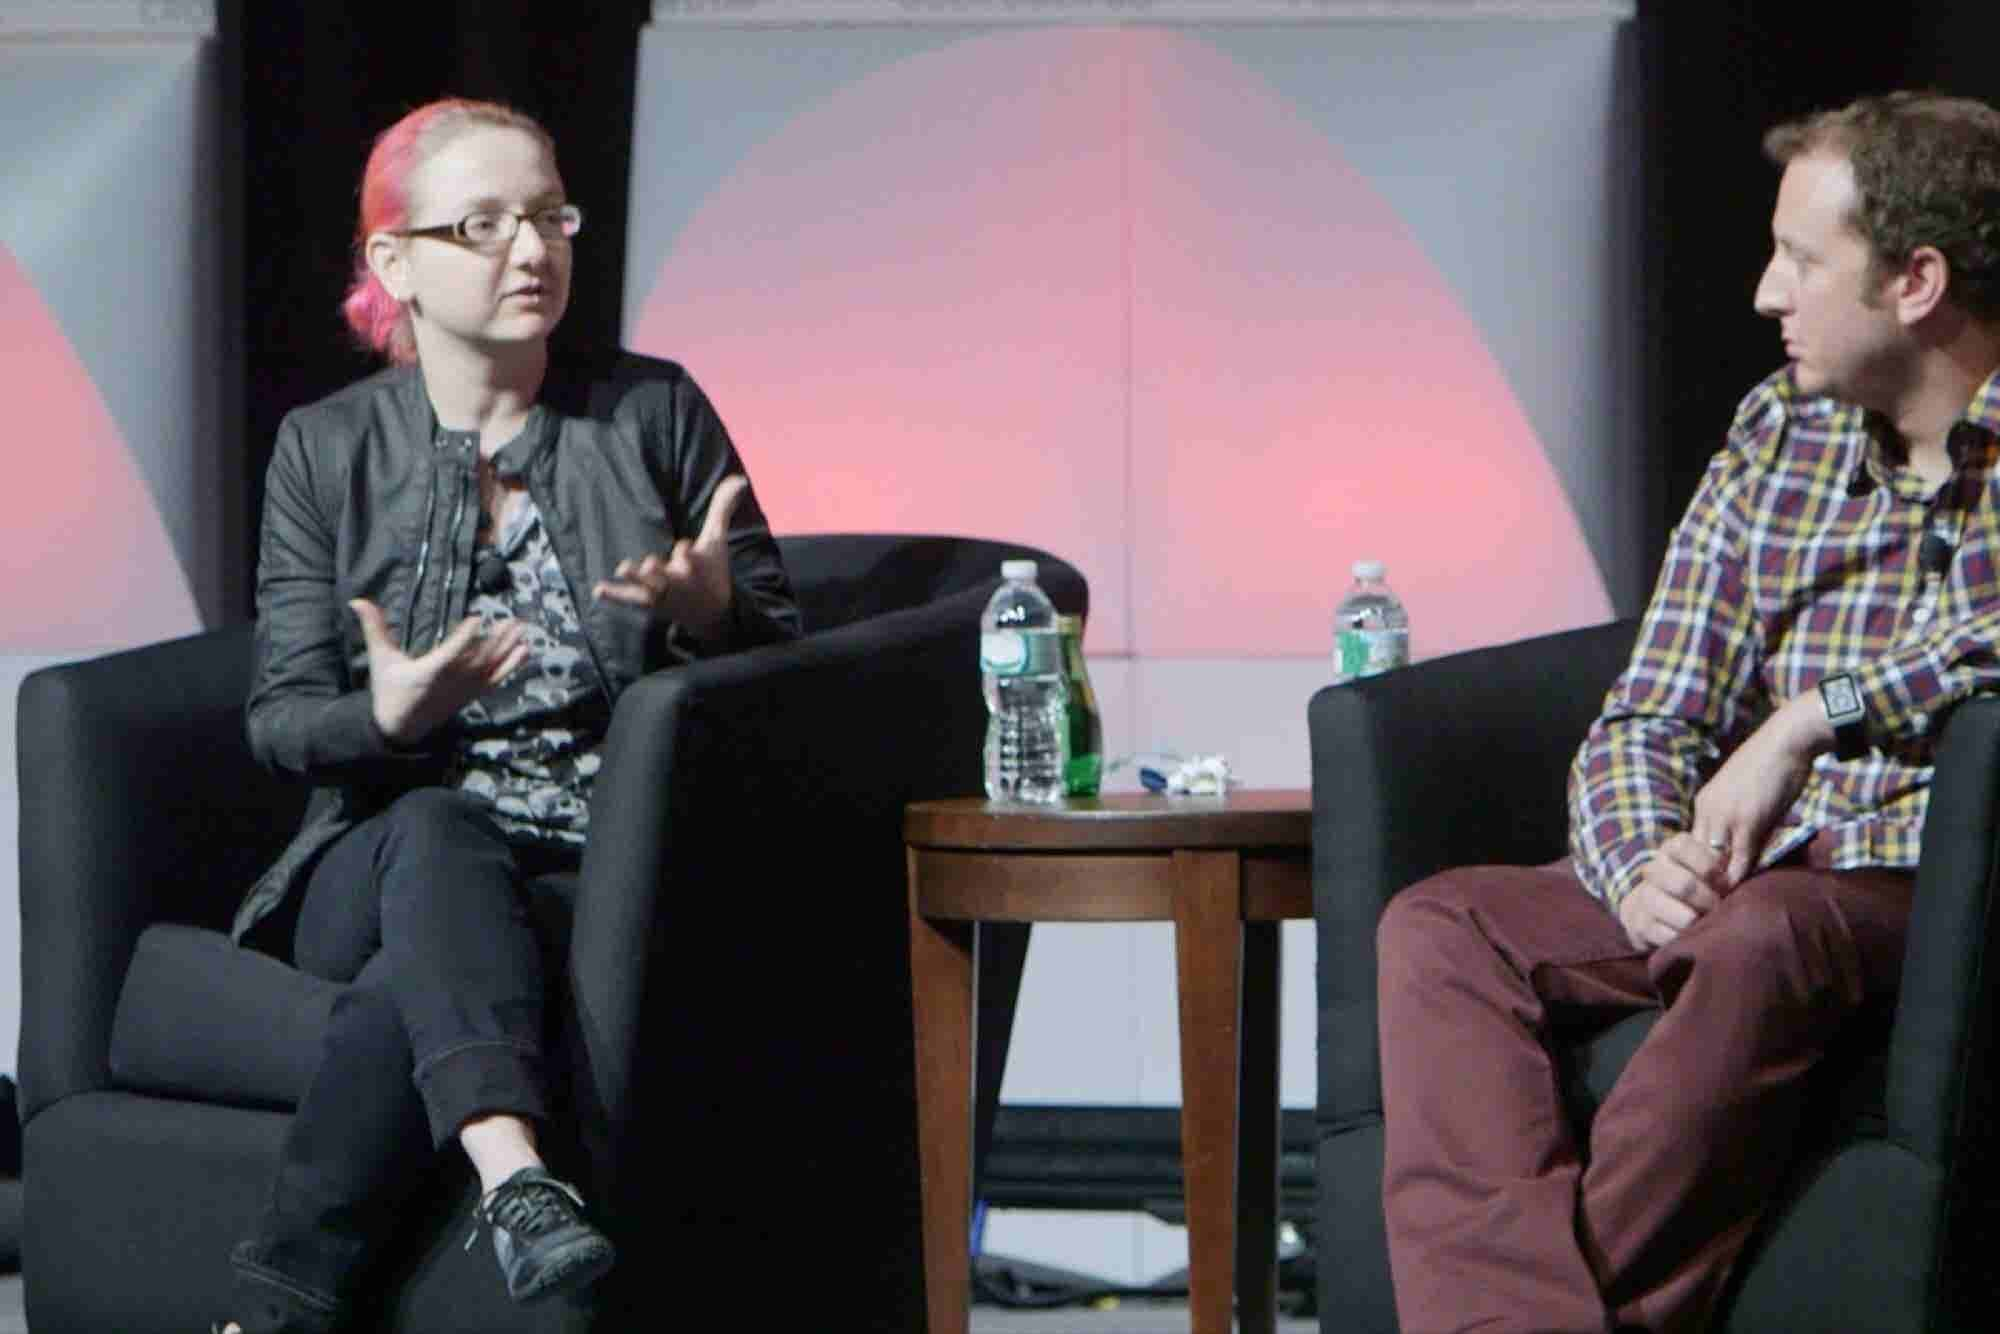 Limor Fried of Adafruit: Your Cause Should Be the Engine That Drives Your Company Forward